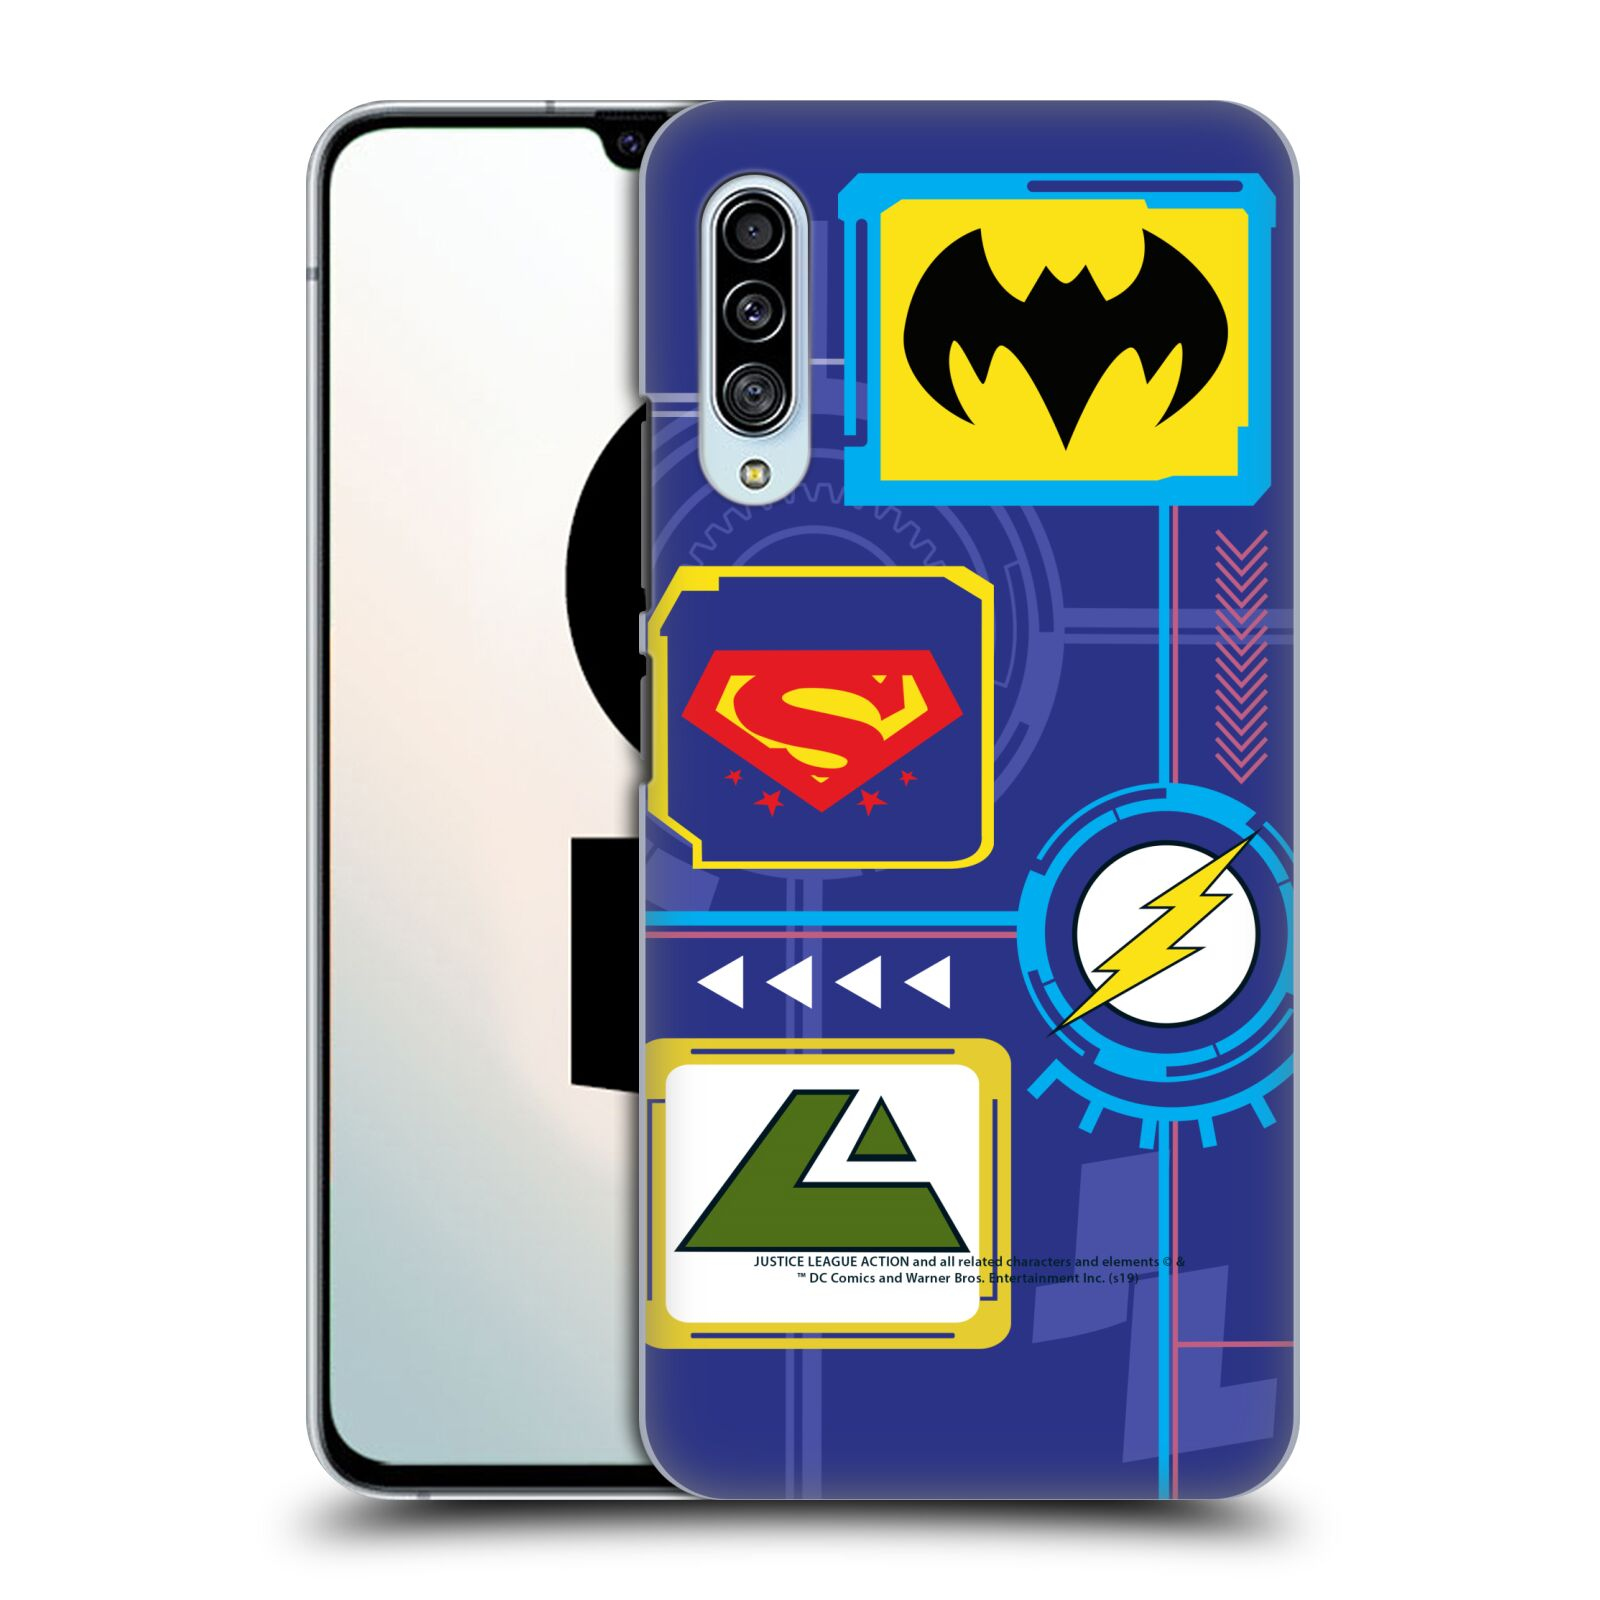 Official Justice League Action Logos Digital Case for Samsung Galaxy A90 5G (2019)